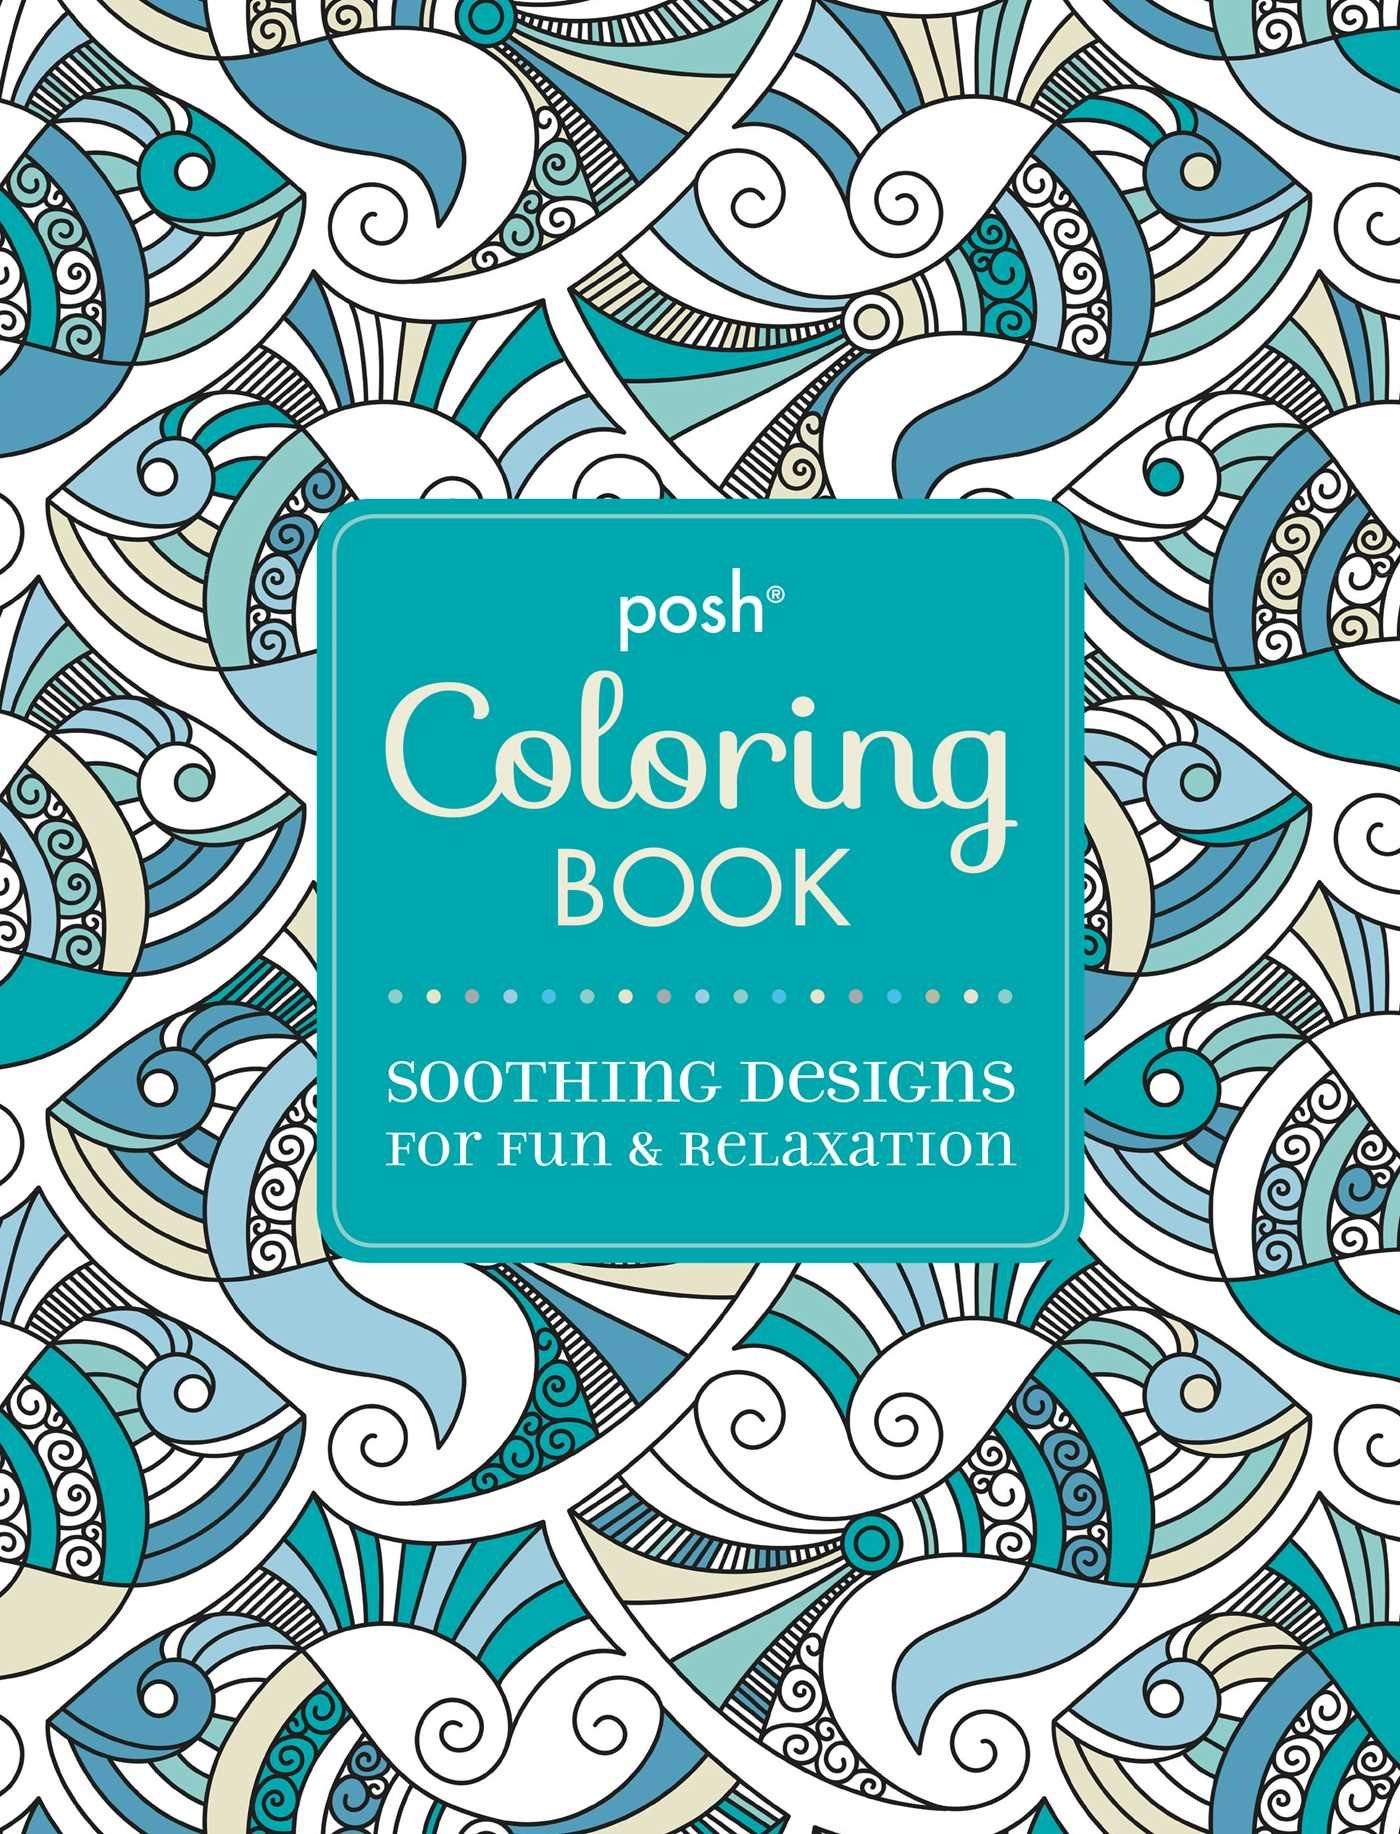 Colourtation anti stress colouring book for adults volume 1 - An Anti Stress Colouring Book Buy Posh Adult Coloring Book Soothing Designs For Fun Relaxation